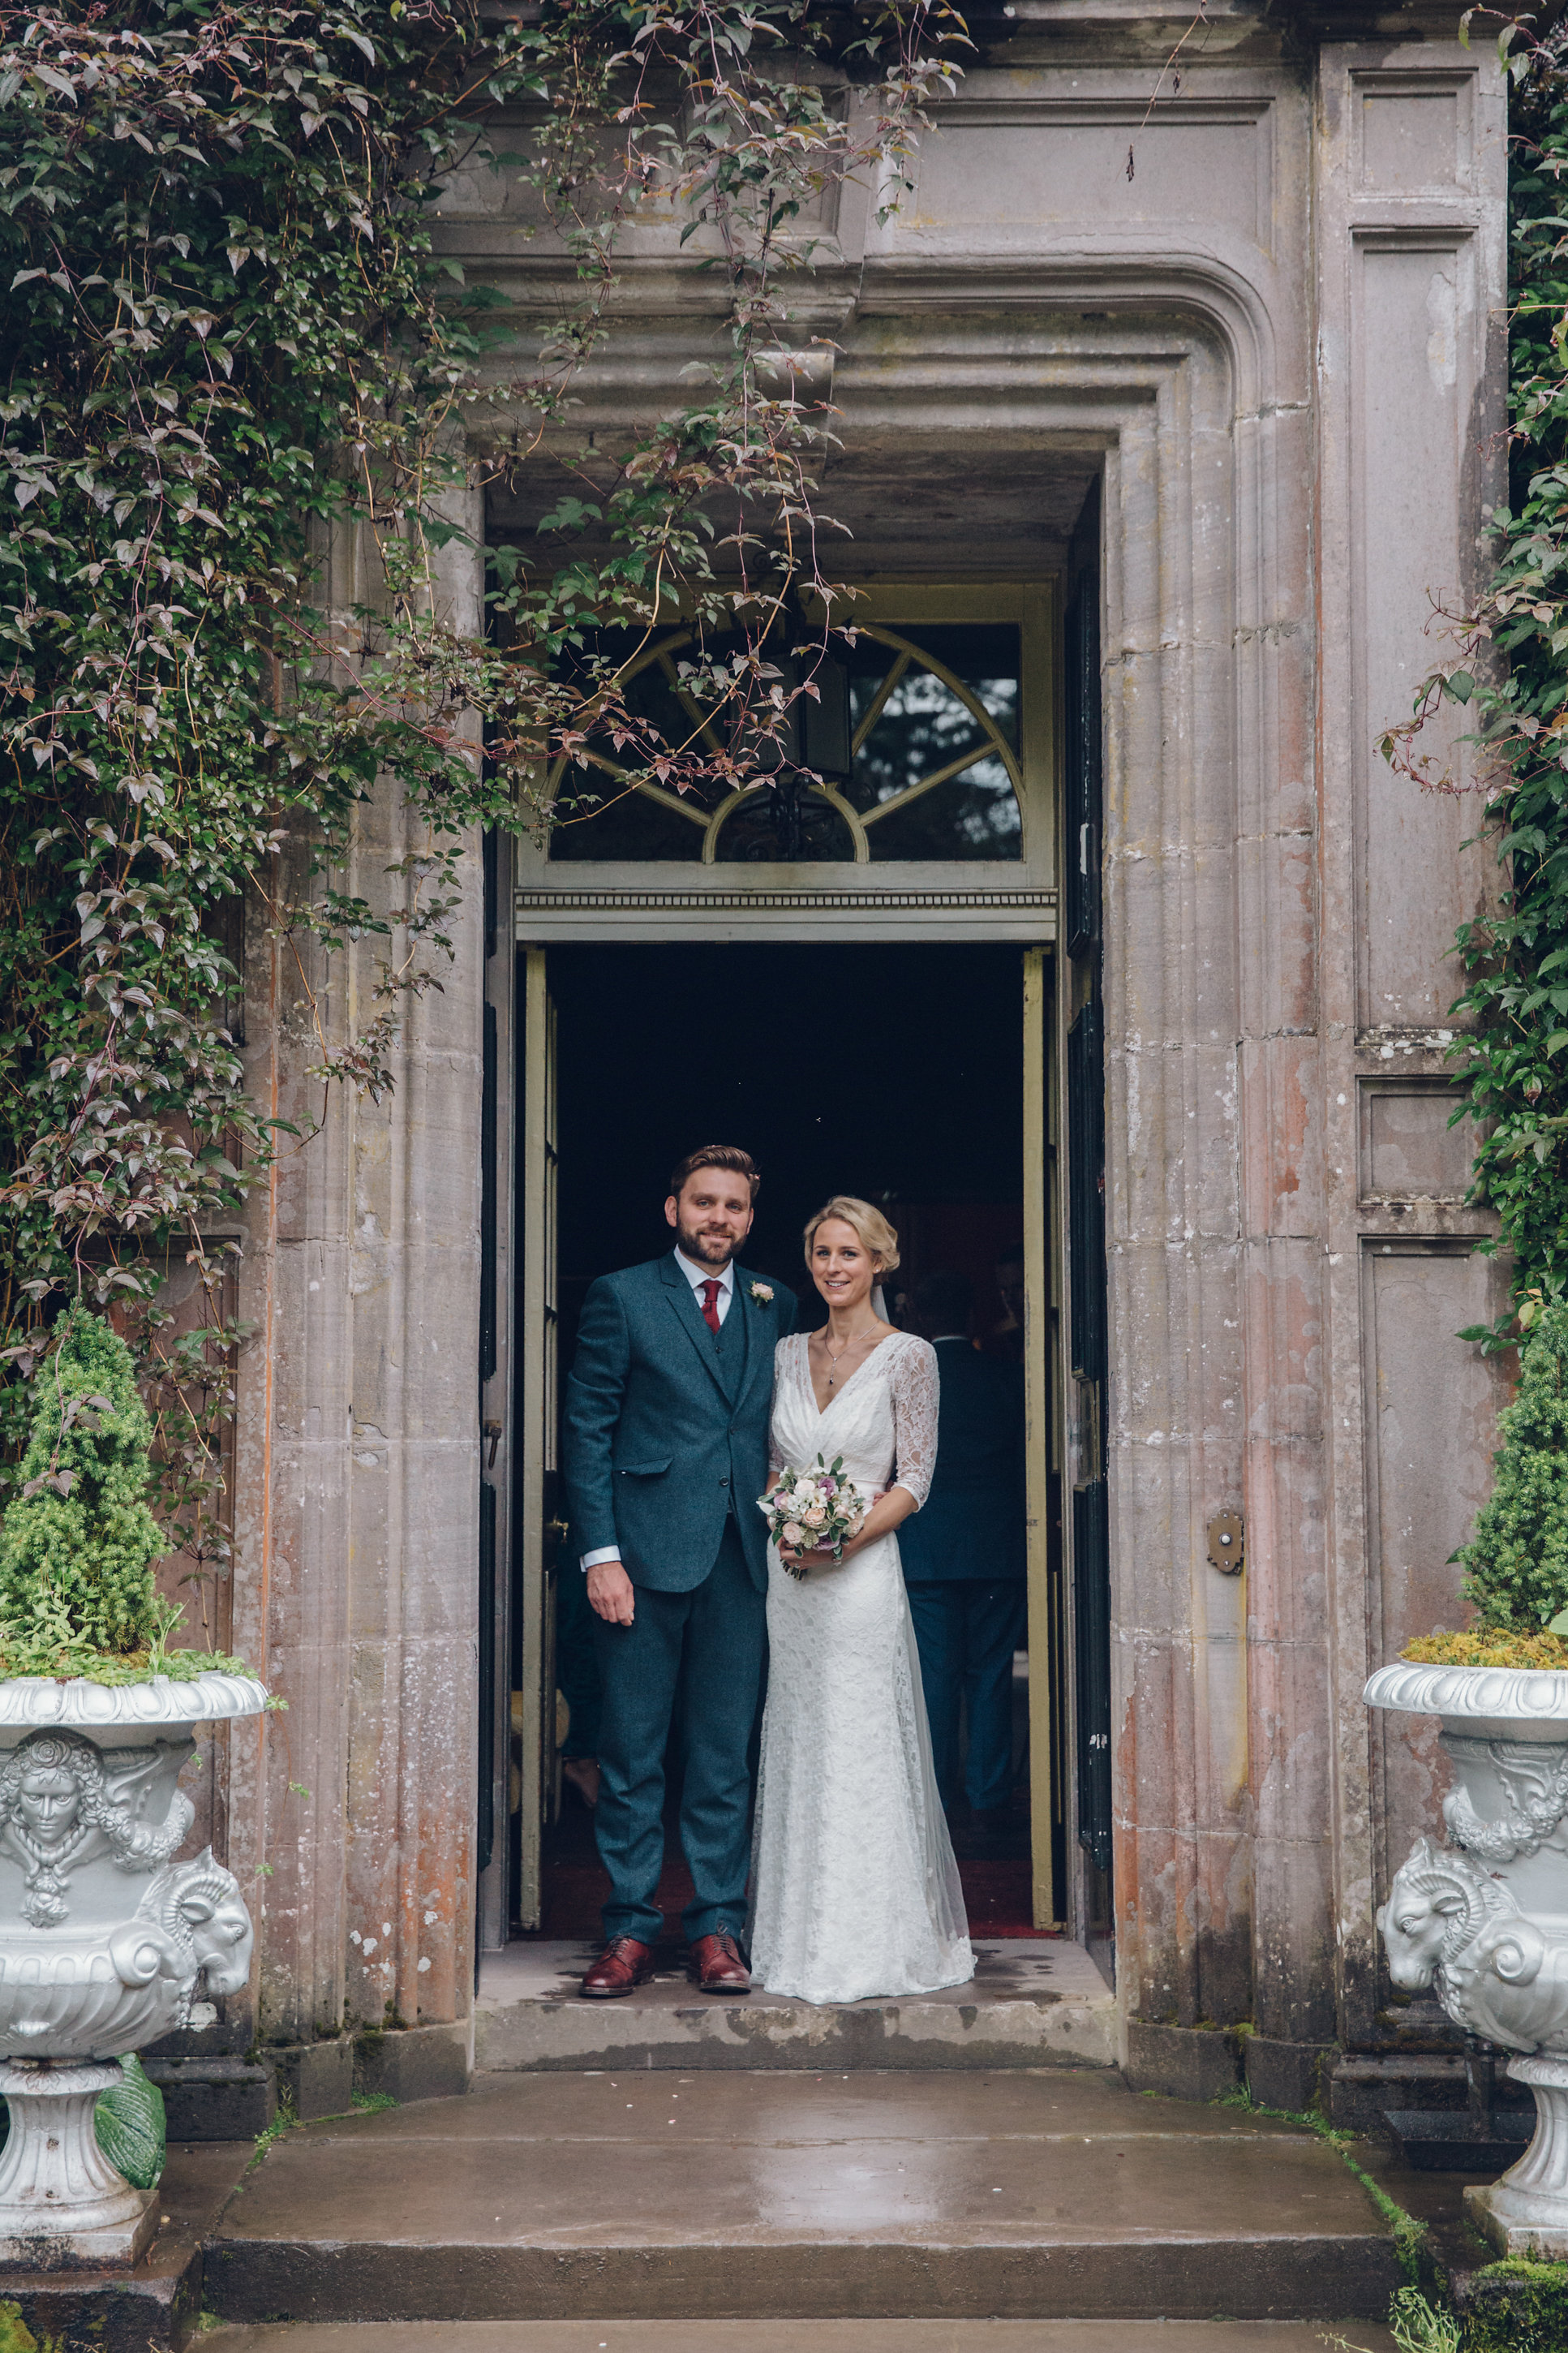 Lovely bride Alisa wears the Halfpenny London Josephine lace wedding dress with cross over front and low V back with three quarter lace sleeves and a blush pink sash worn with a French lace trim veil